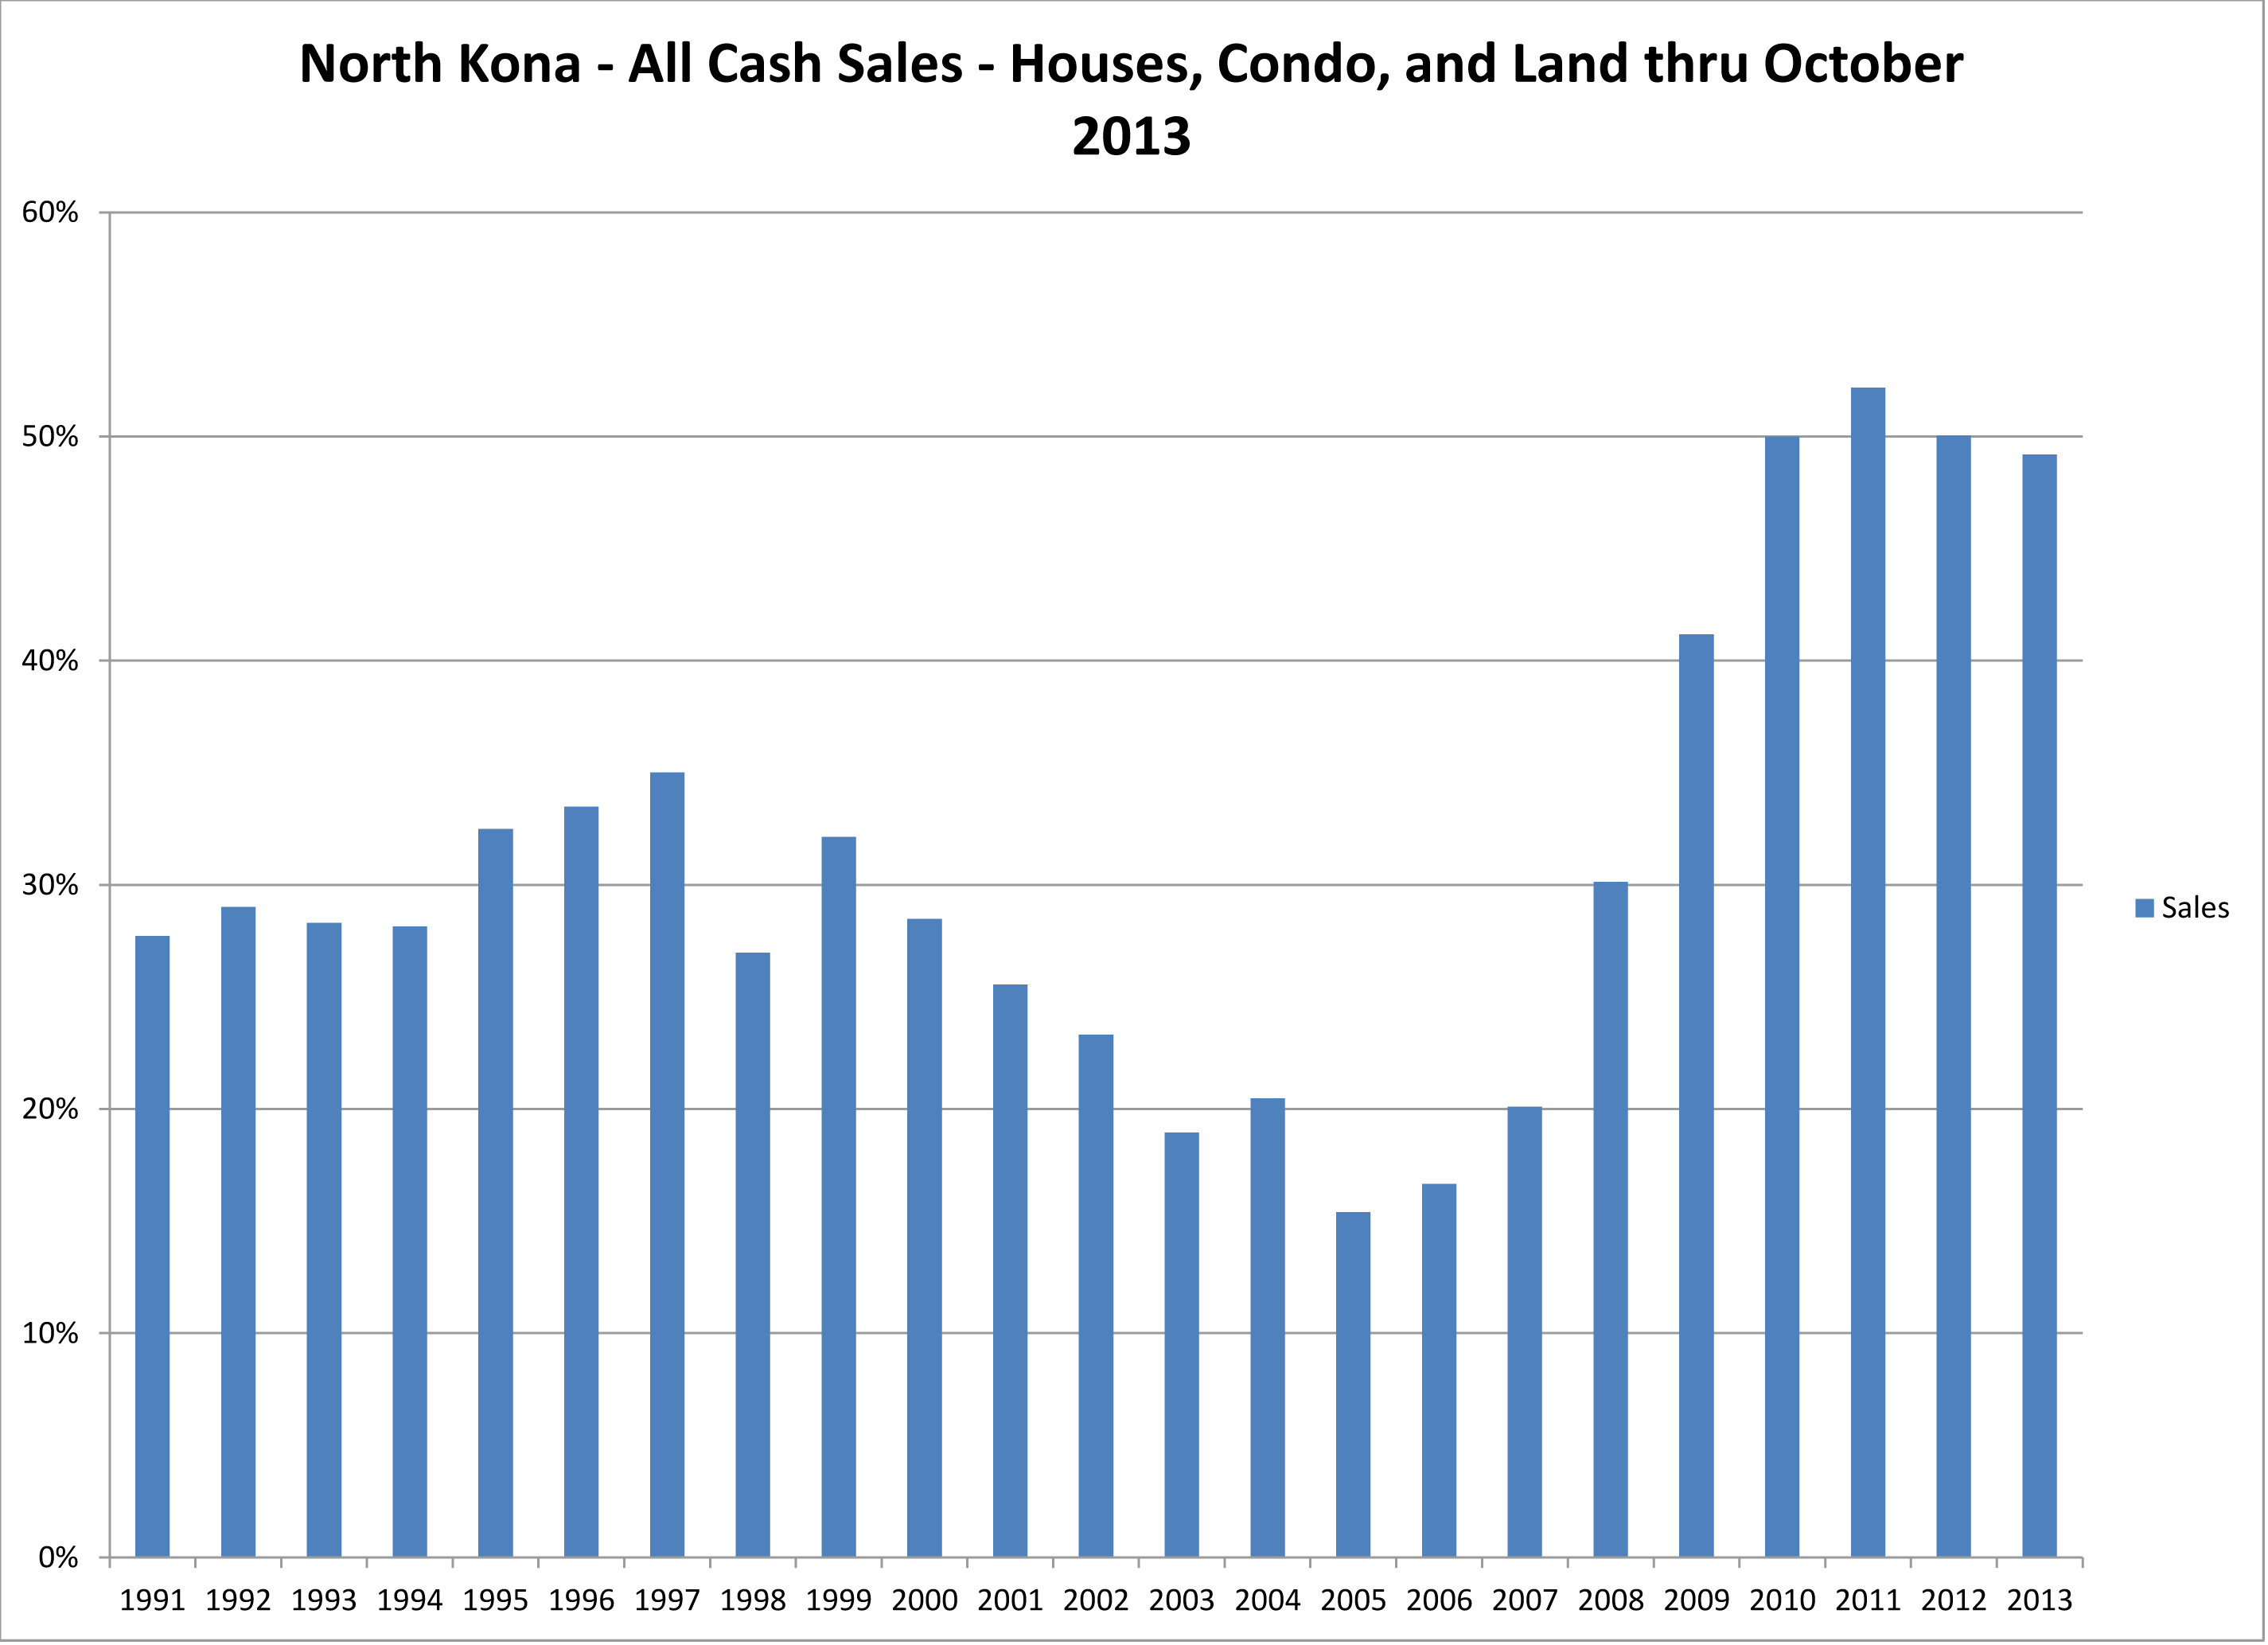 NK Cash Sales as a percentage of the market Nov 2013